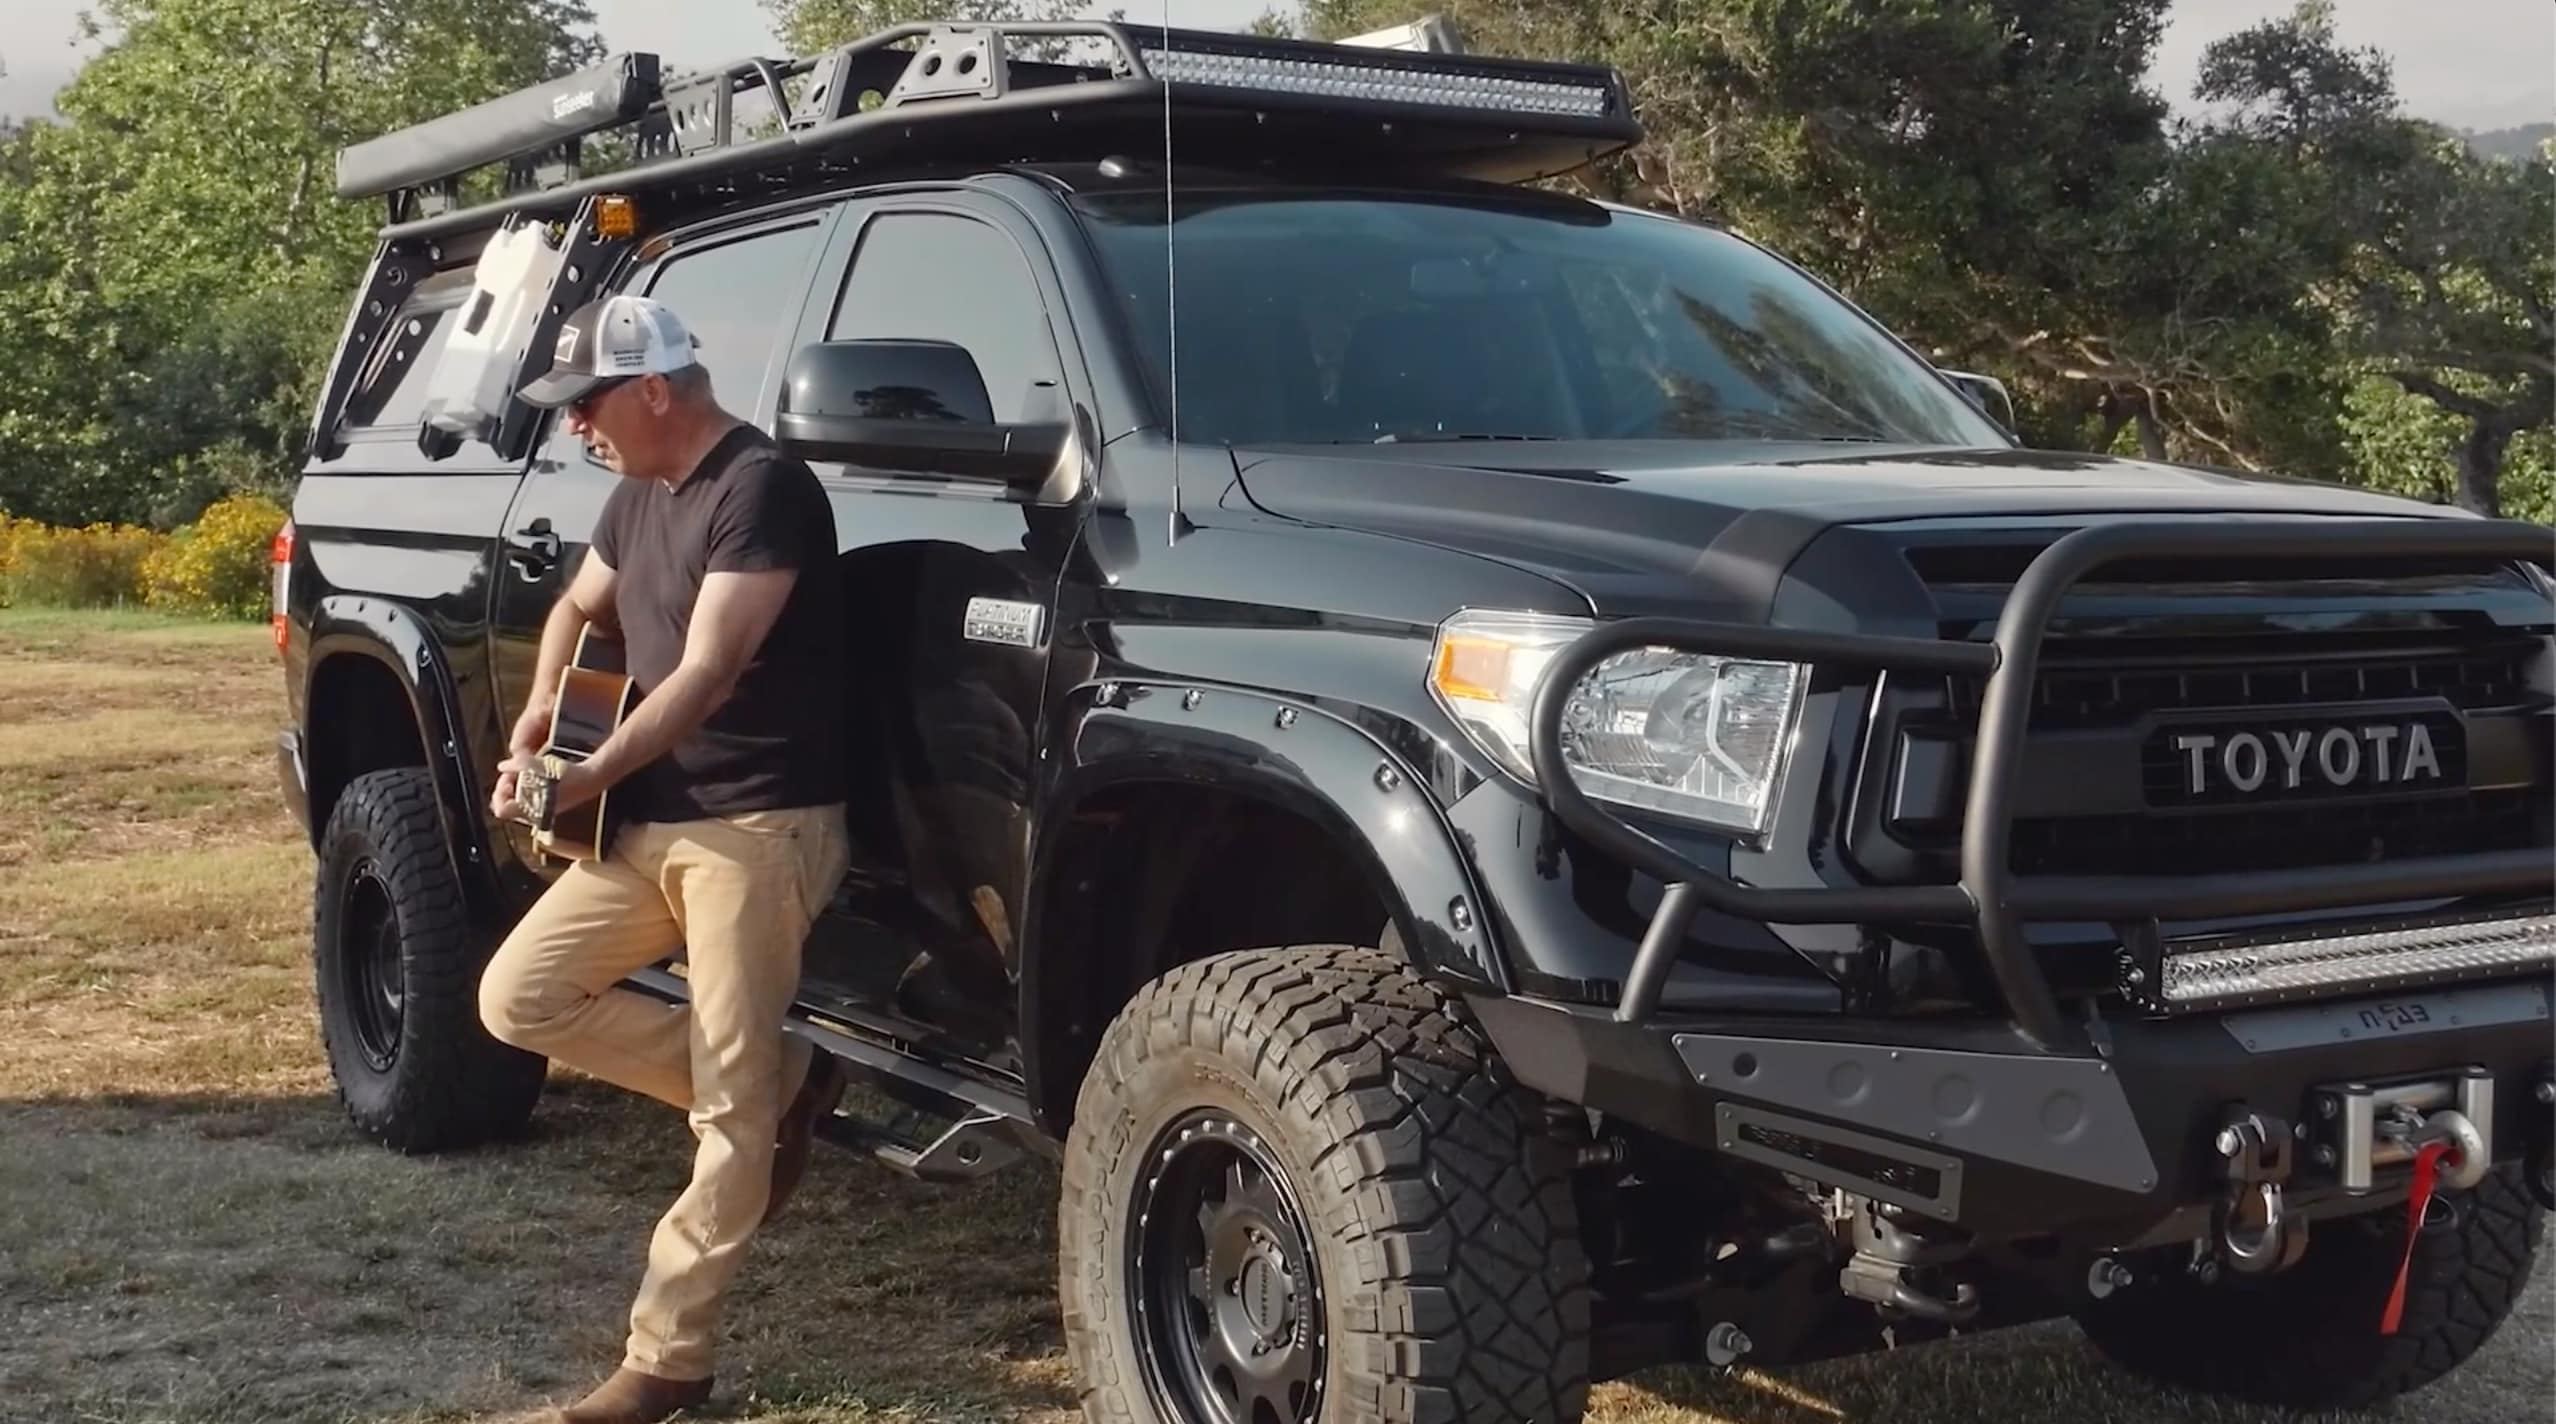 Kevin Costner Teams Up With Toyota To Built Custom Tundra